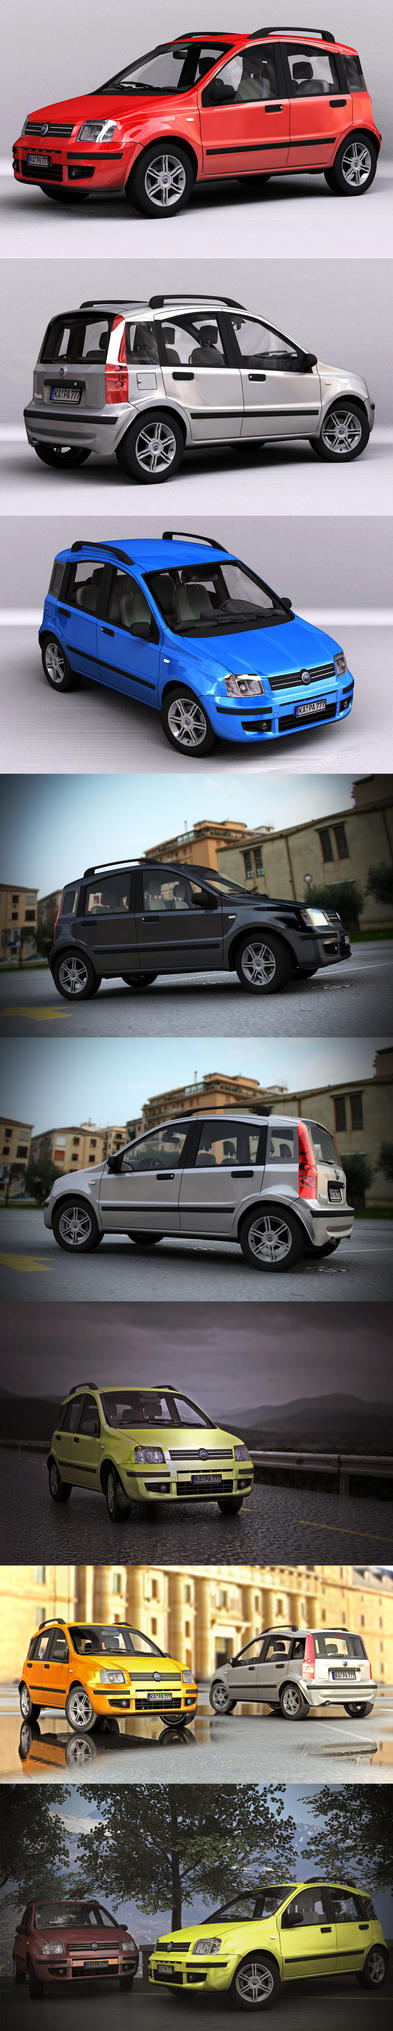 Fiat Panda by cpt-smith